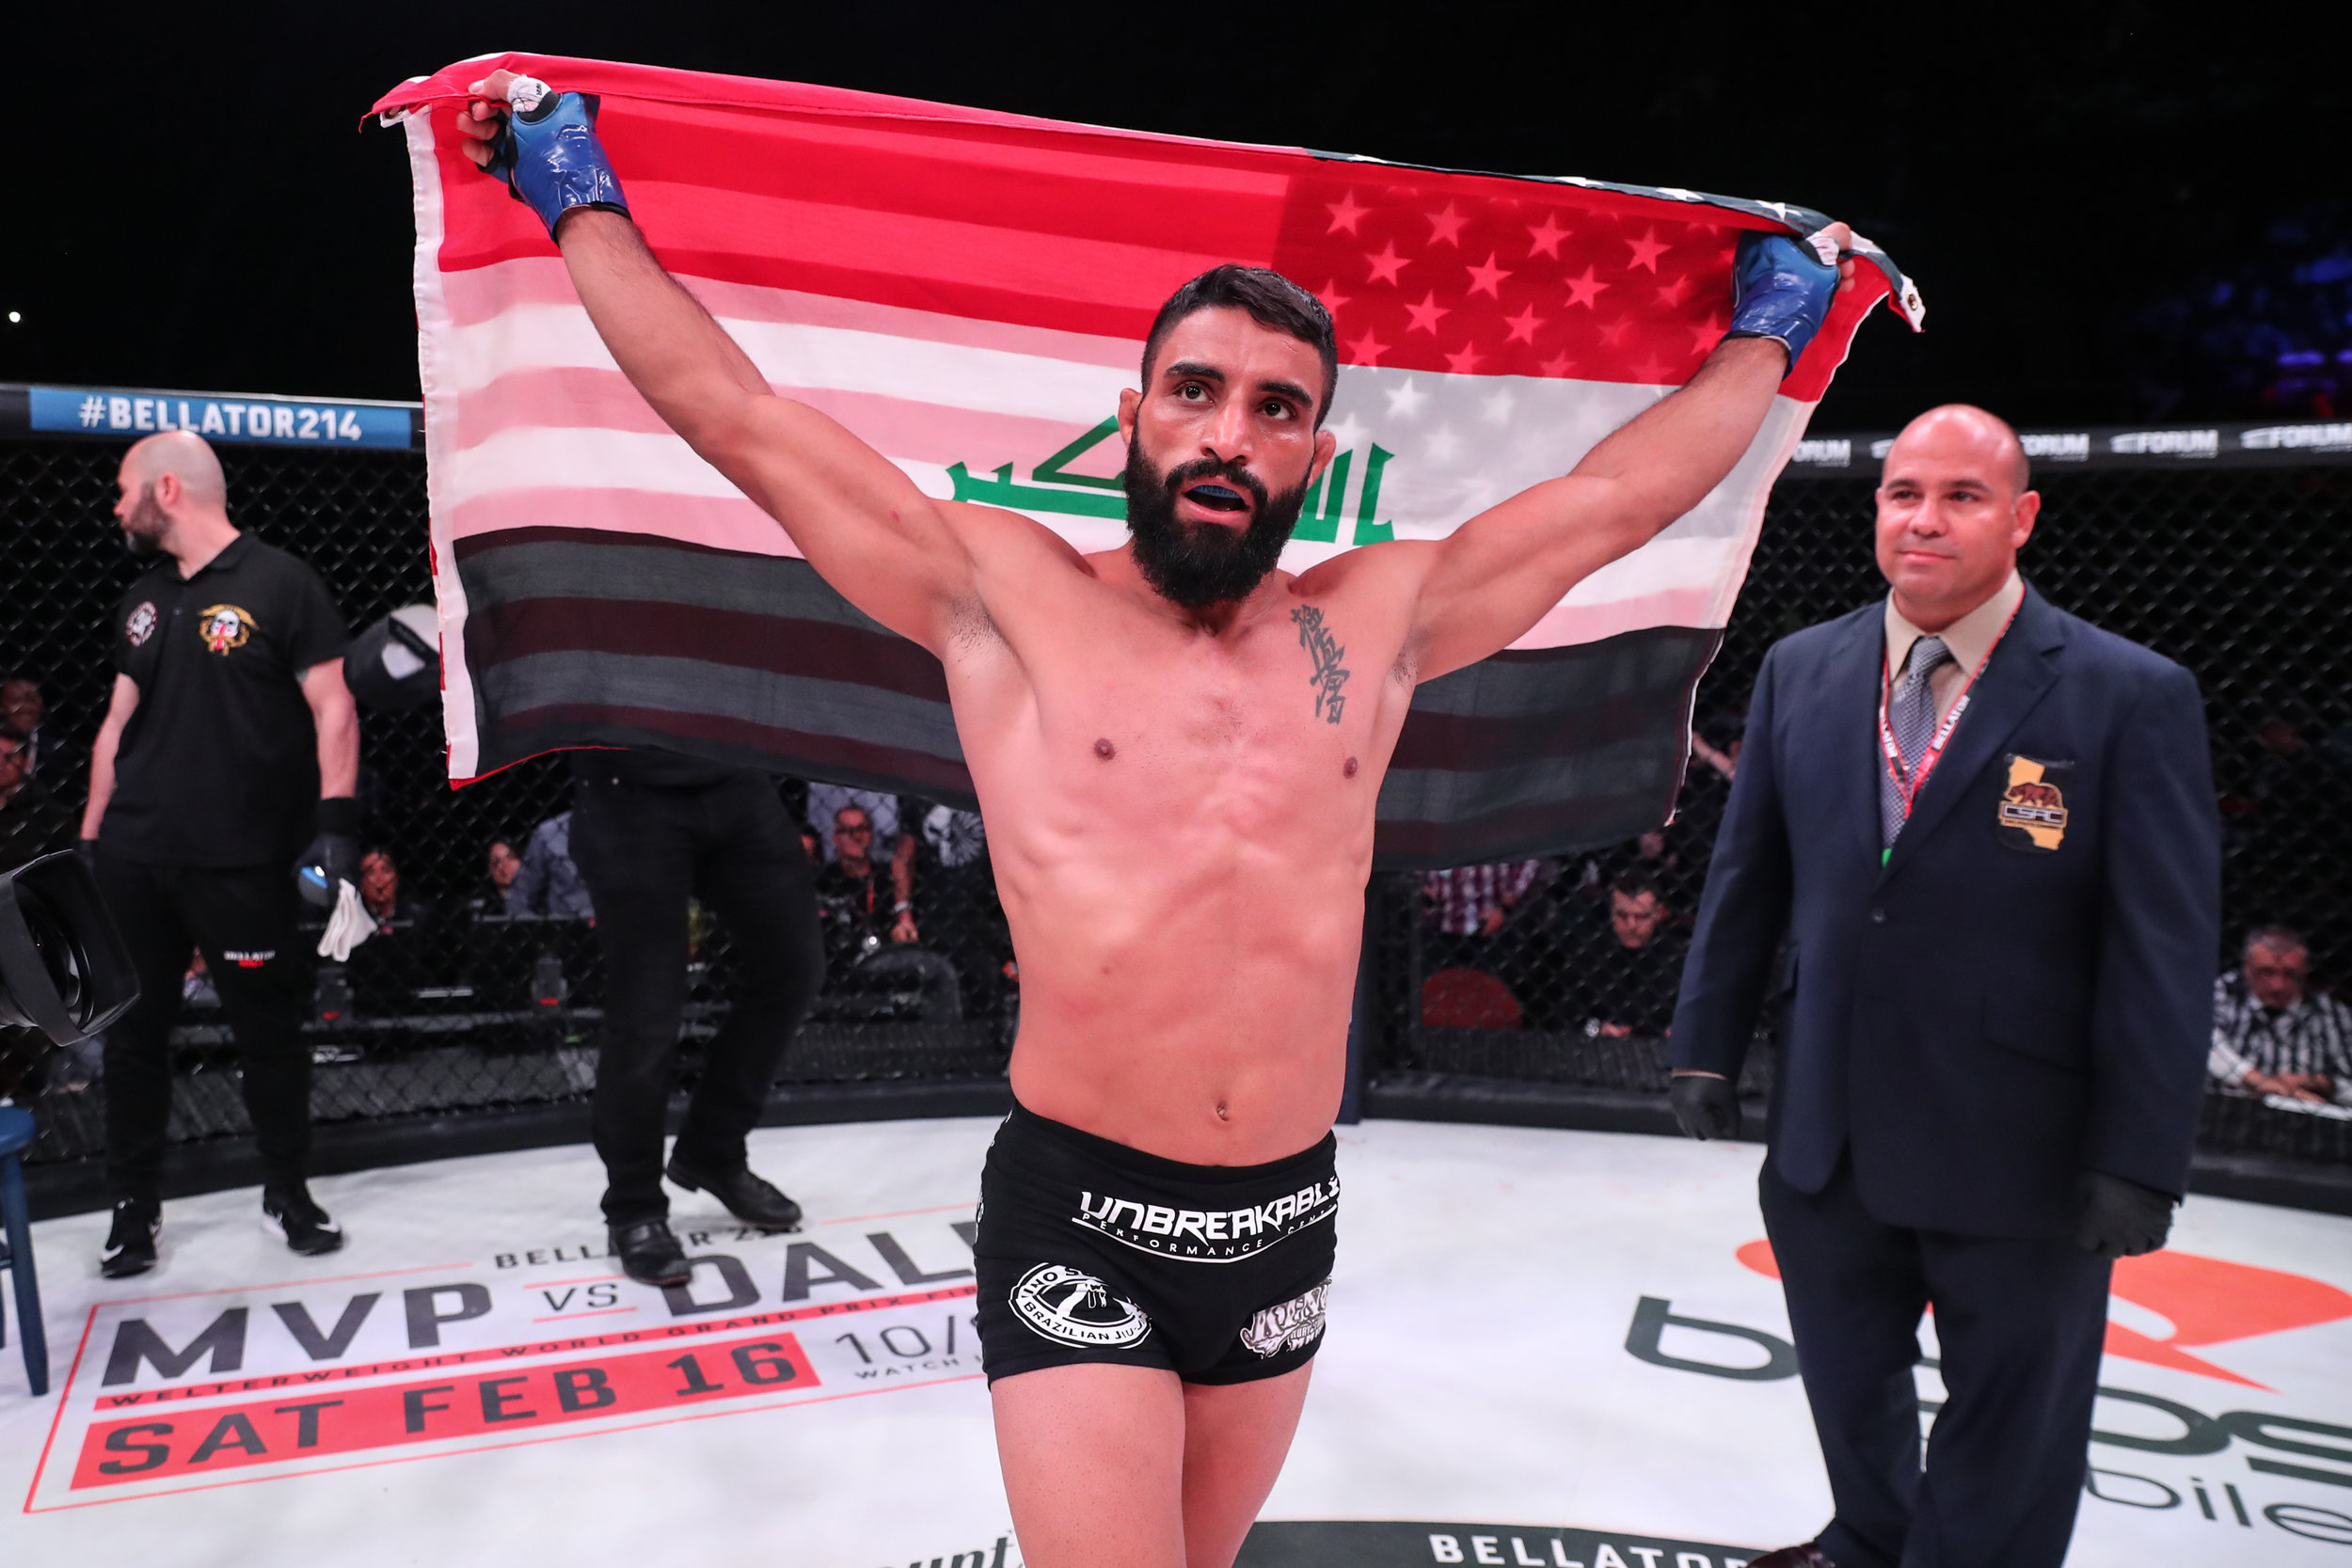 Adel Altamimi def. Brandon McMahan Submission (armbar) Rounds 1 (1:16)